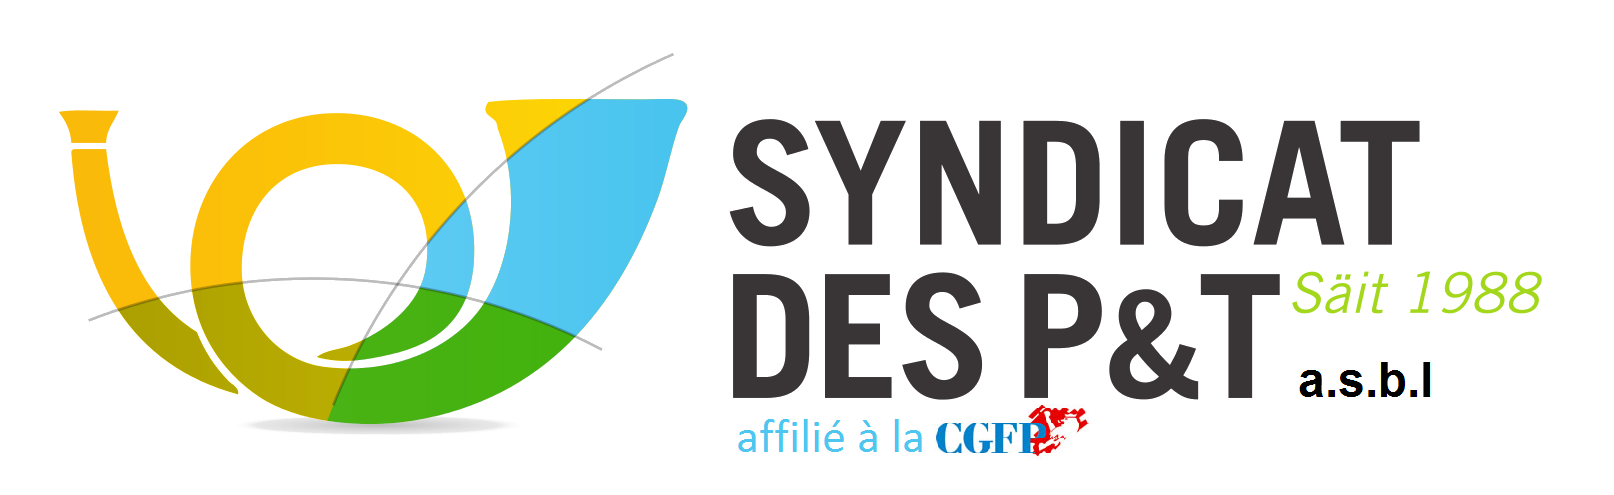 logo syndicat cgfp